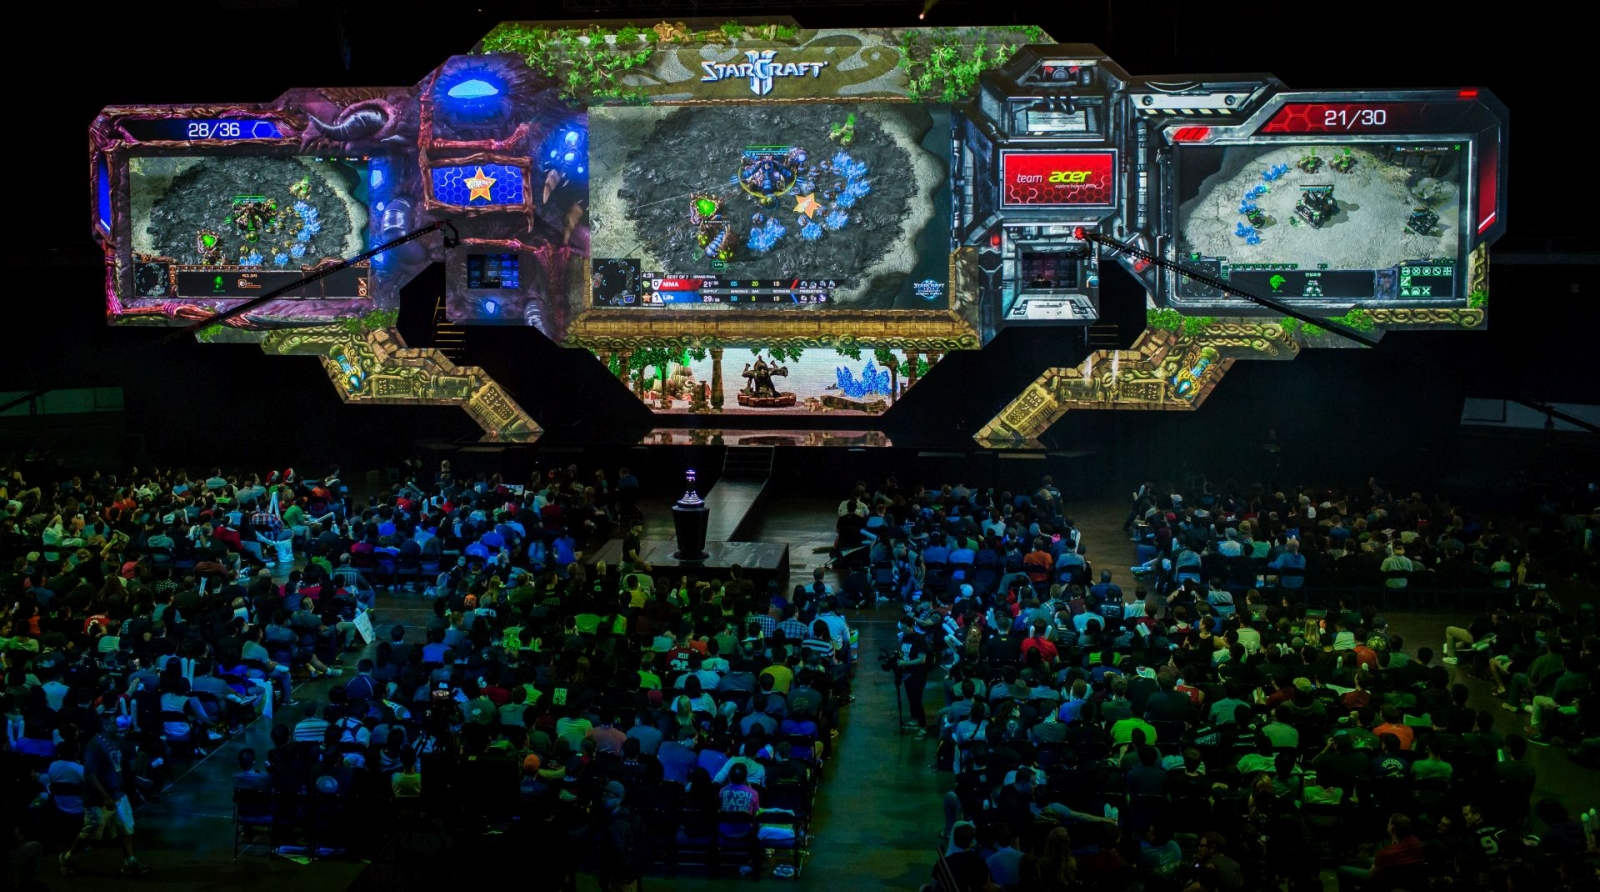 BlizzCon 2014 plays host to the StarCraft 2 World Championship finals